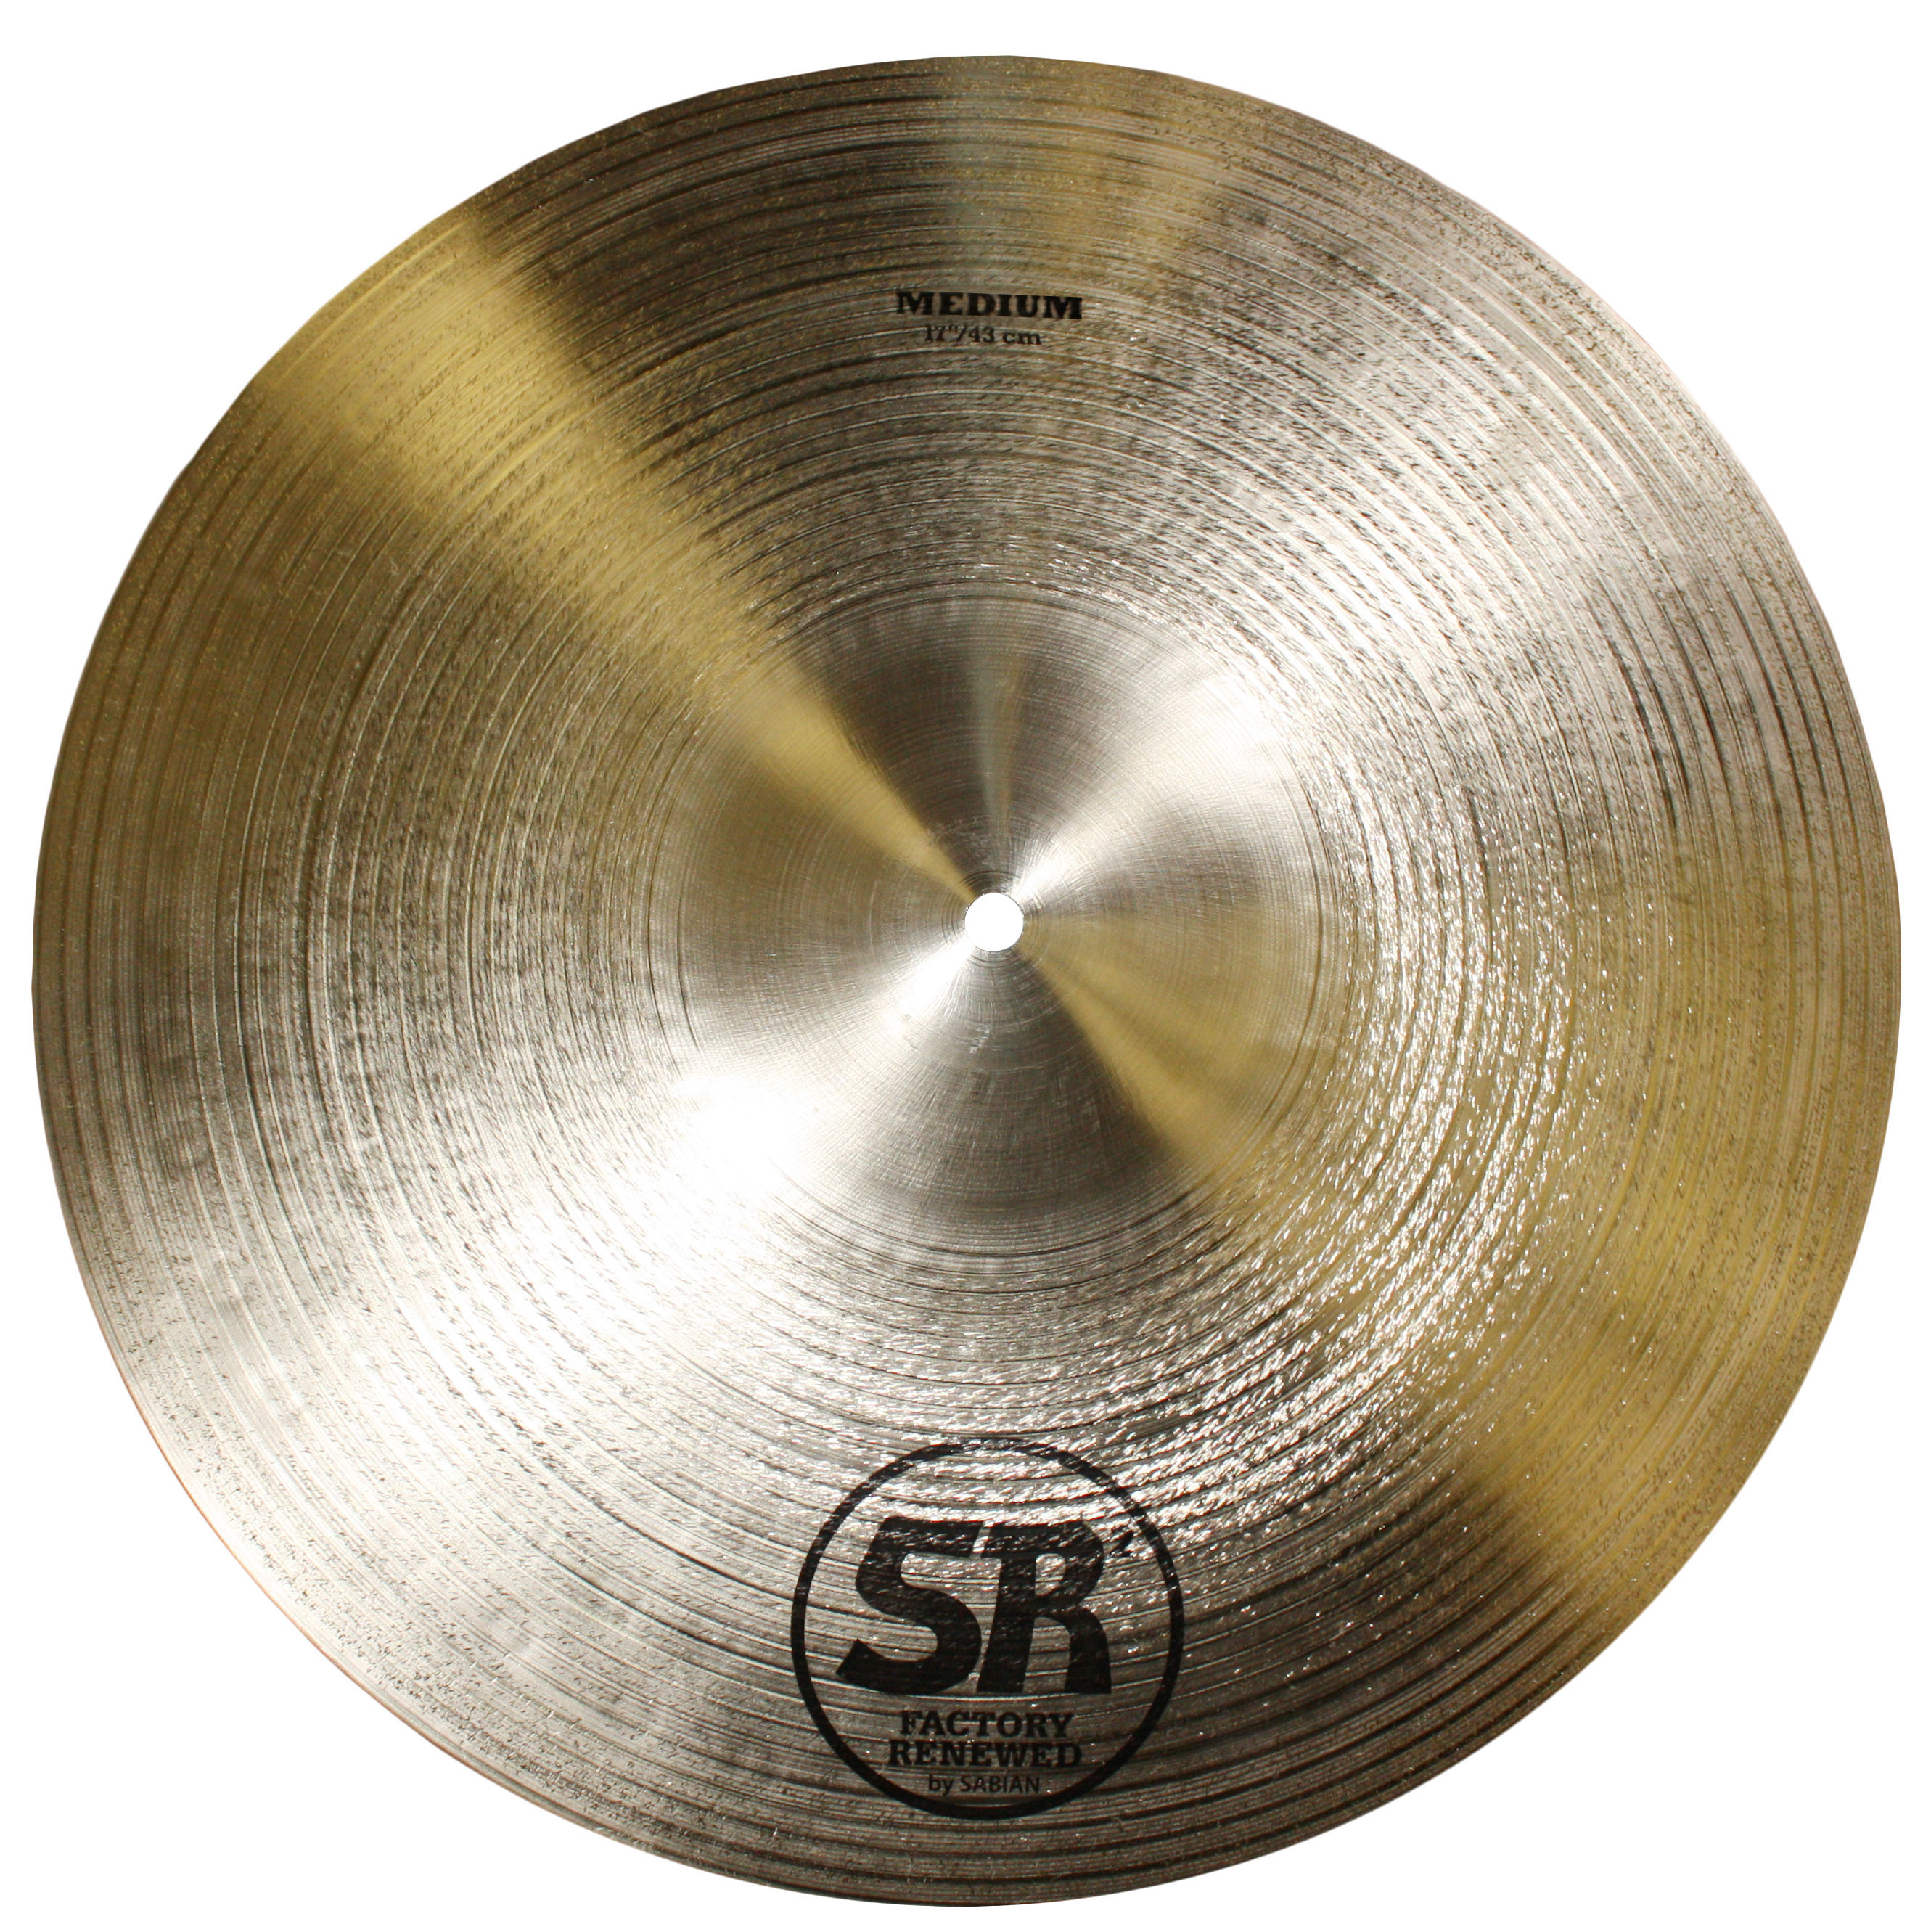 "Sabian 17"" SR2 Medium Cymbal"